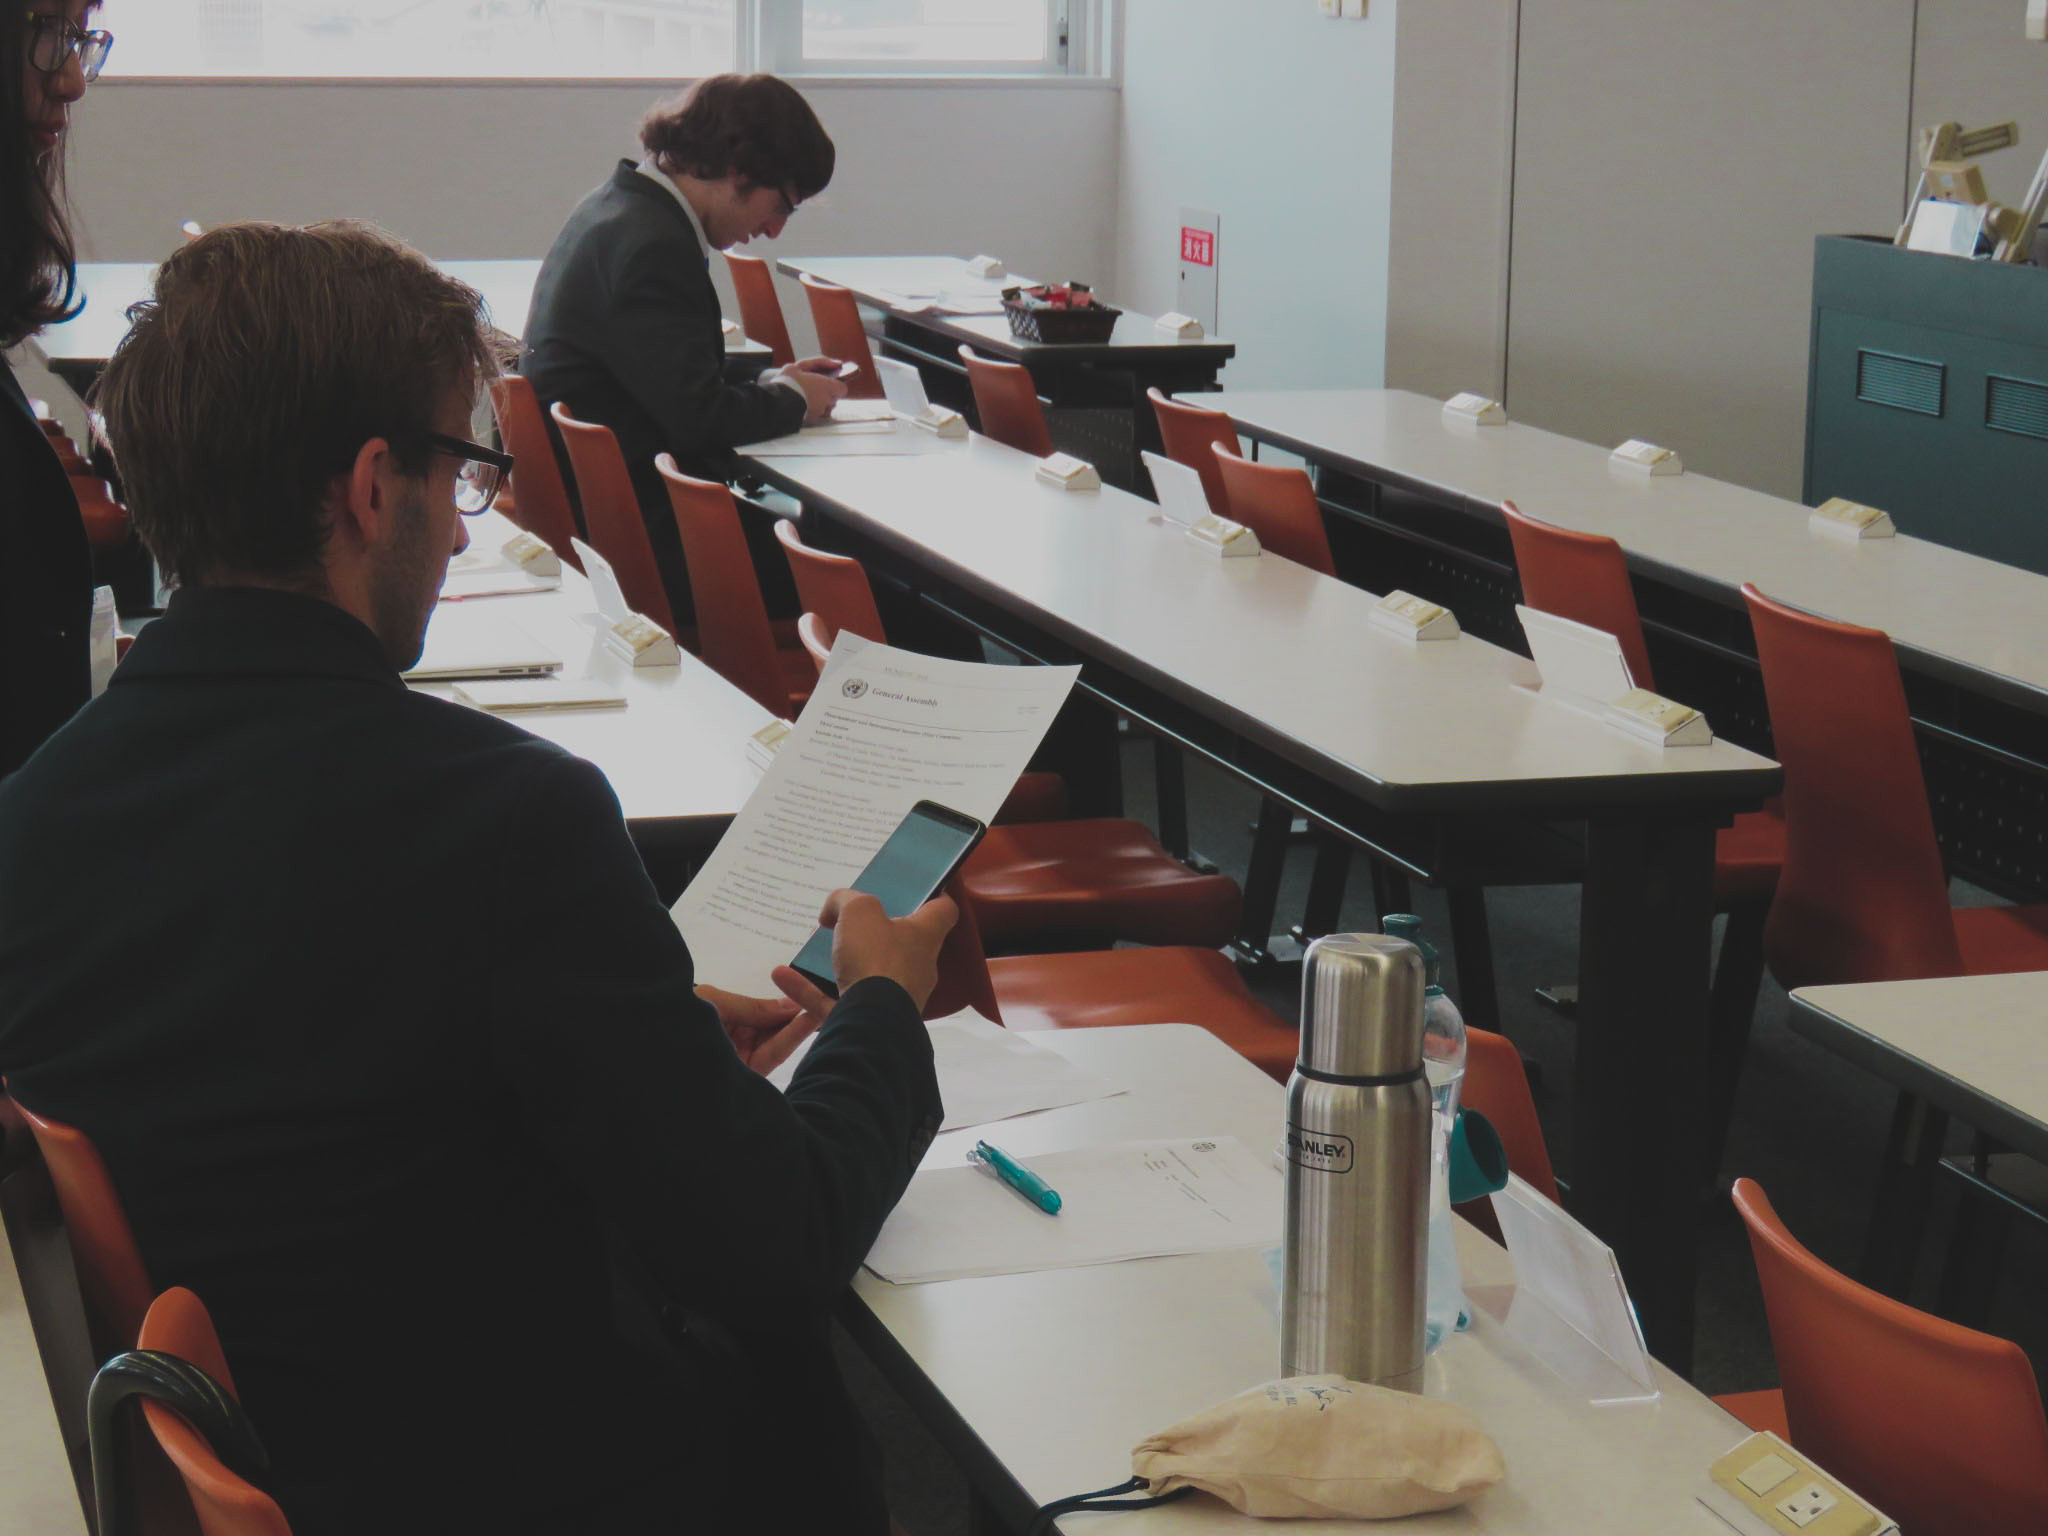 Arriving early at the venue, the delegate of Germany goes over his documents before Day 2 begins.